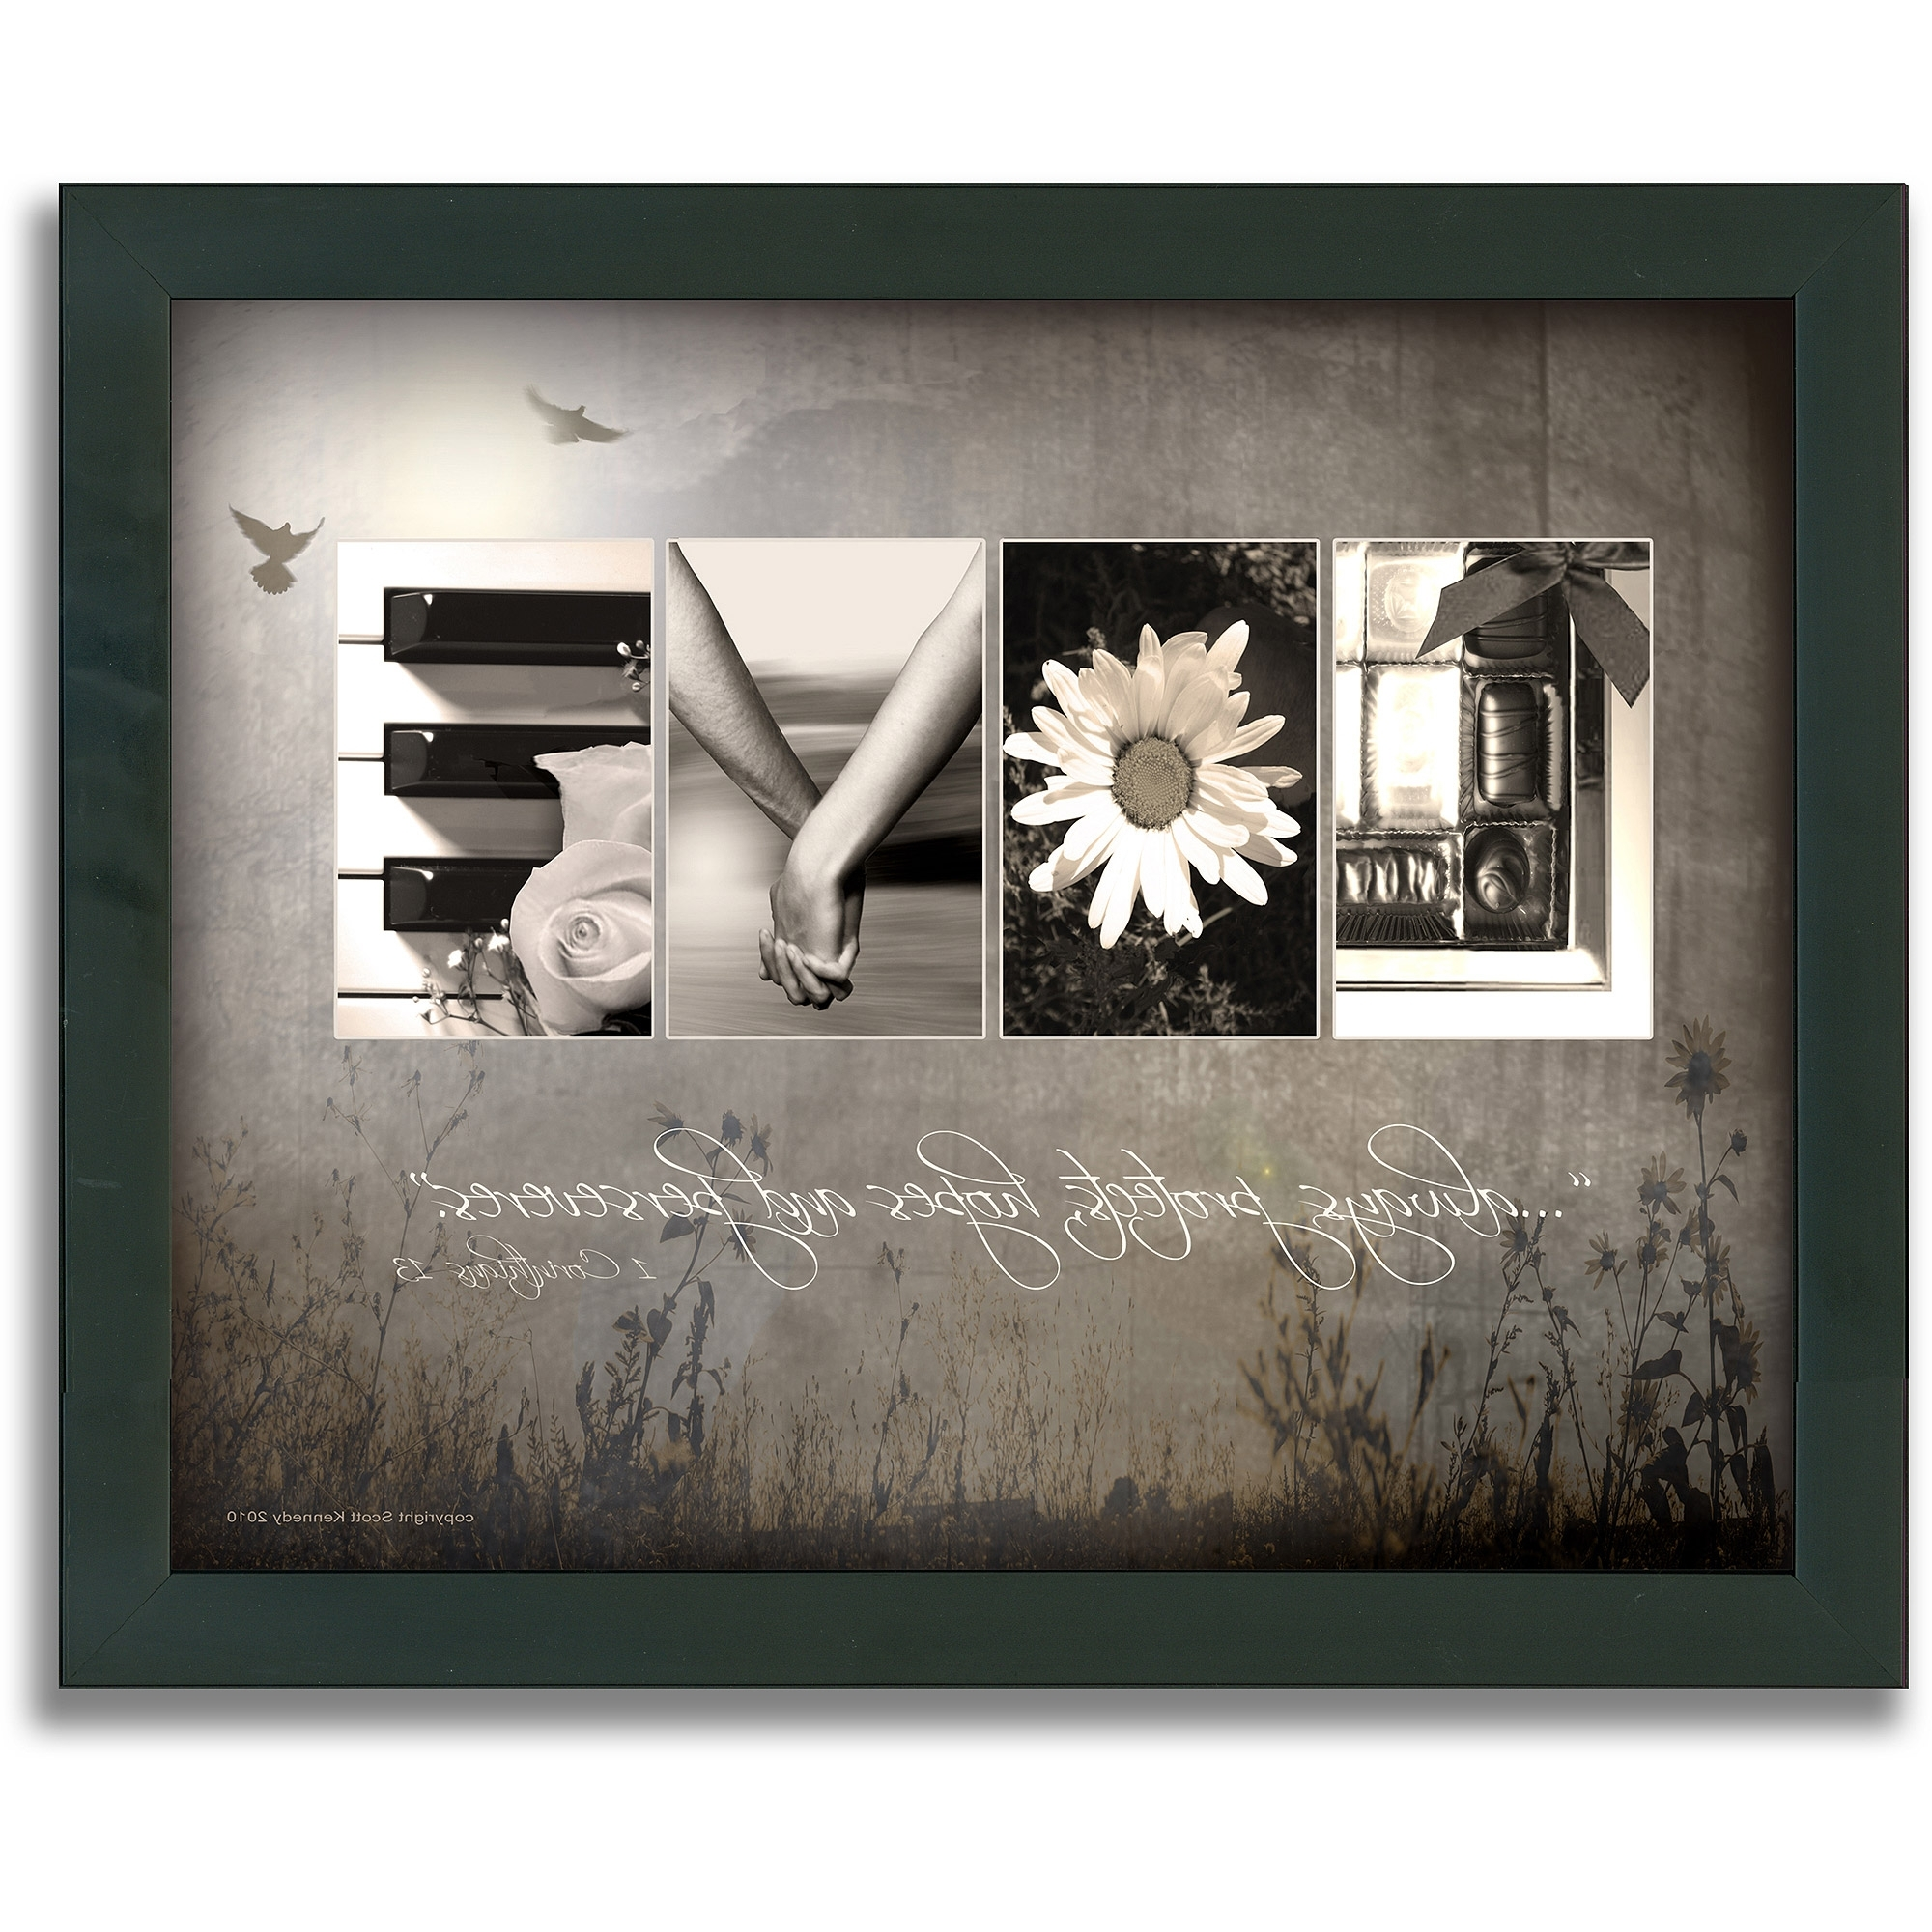 Personal Prints Love Letters Framed Canvas Wall Art – Walmart Intended For Well Known Love Canvas Wall Art (View 11 of 15)